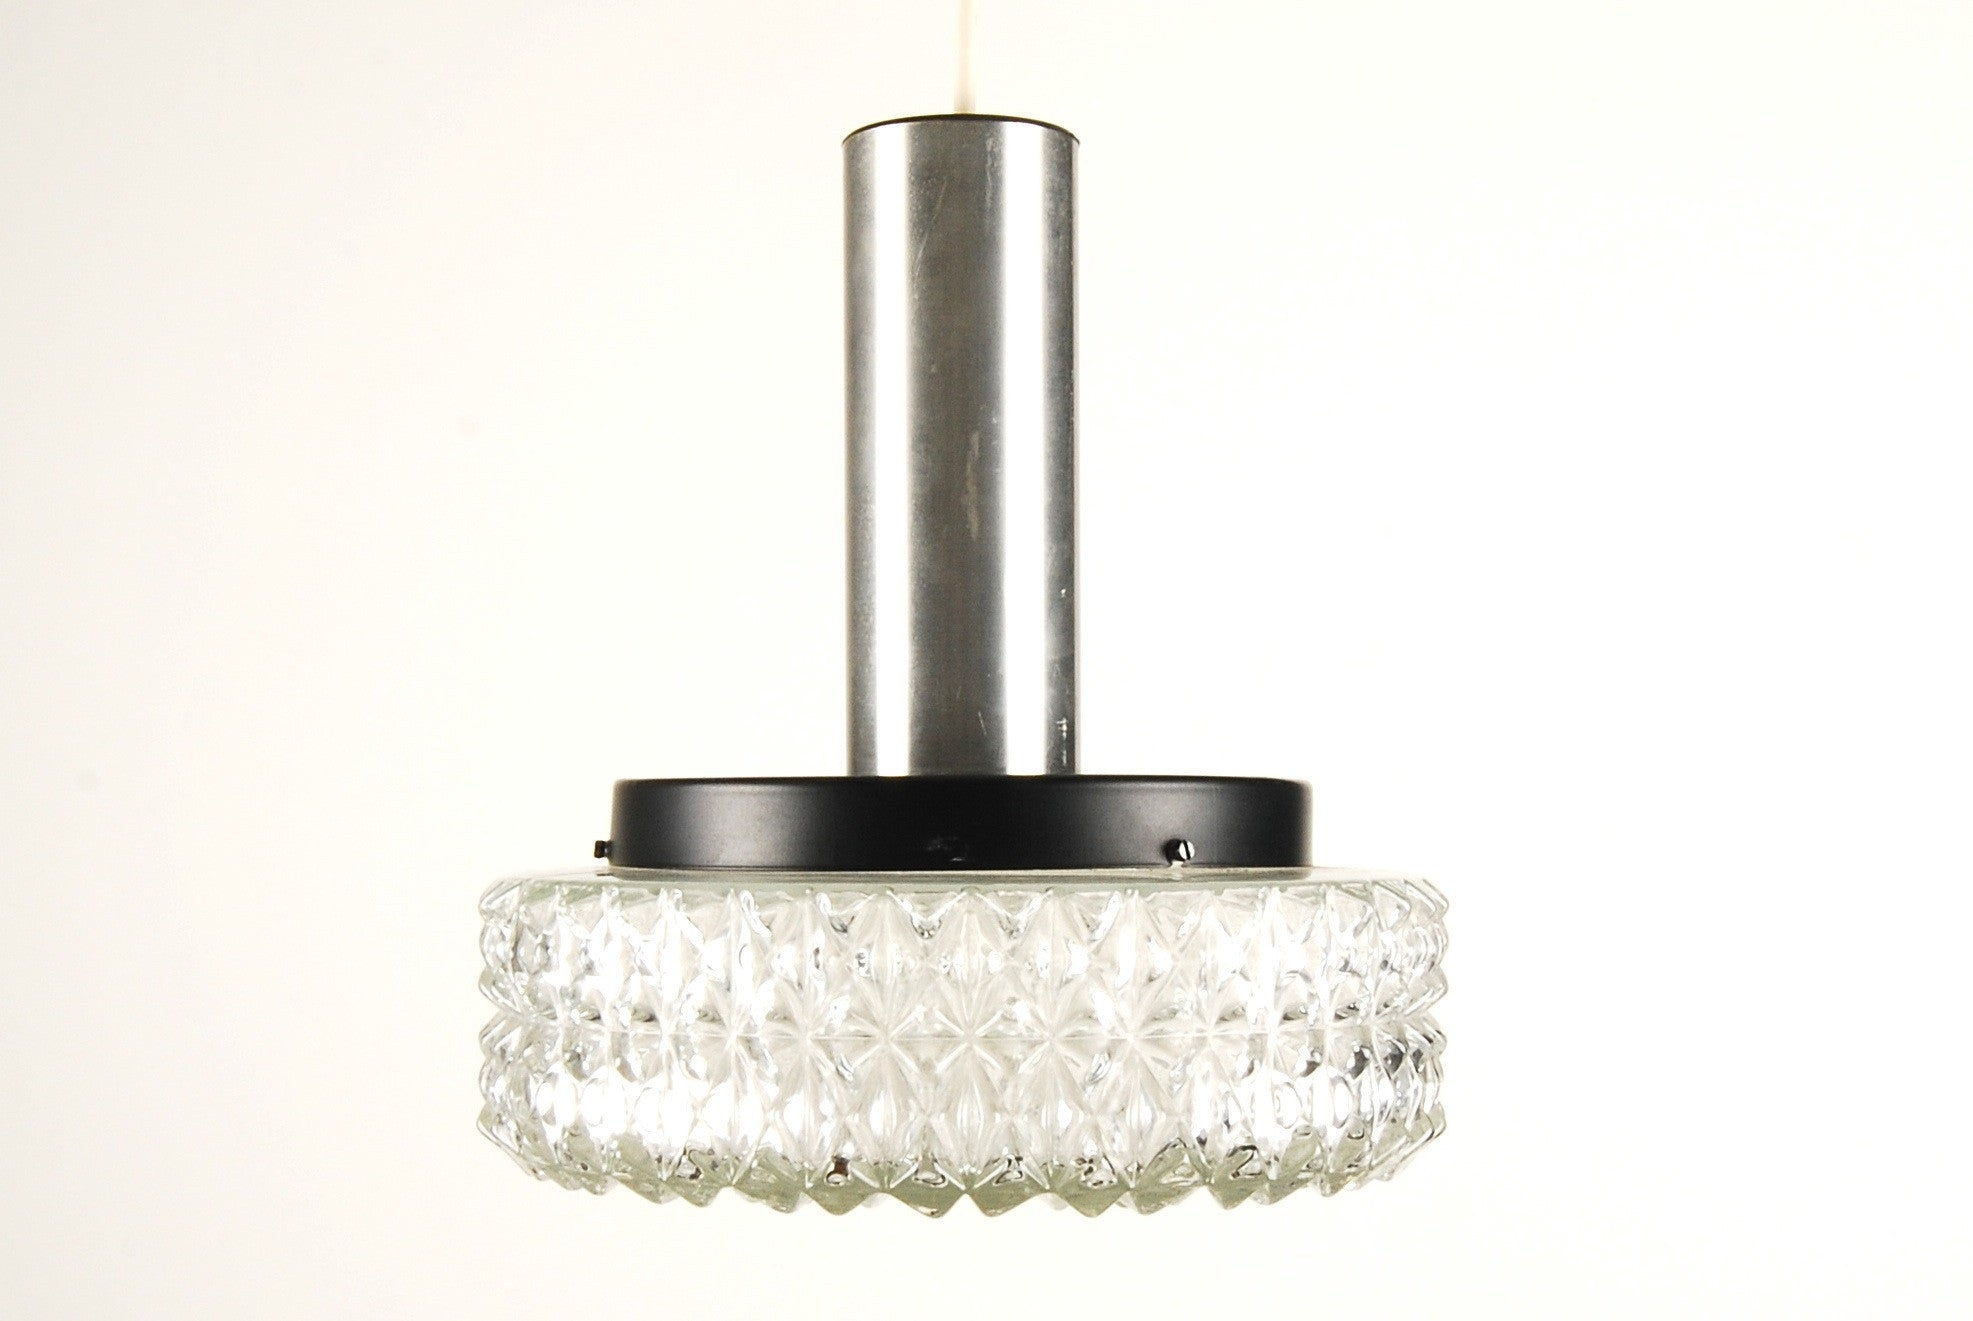 Chrome and glass ceiling lamp